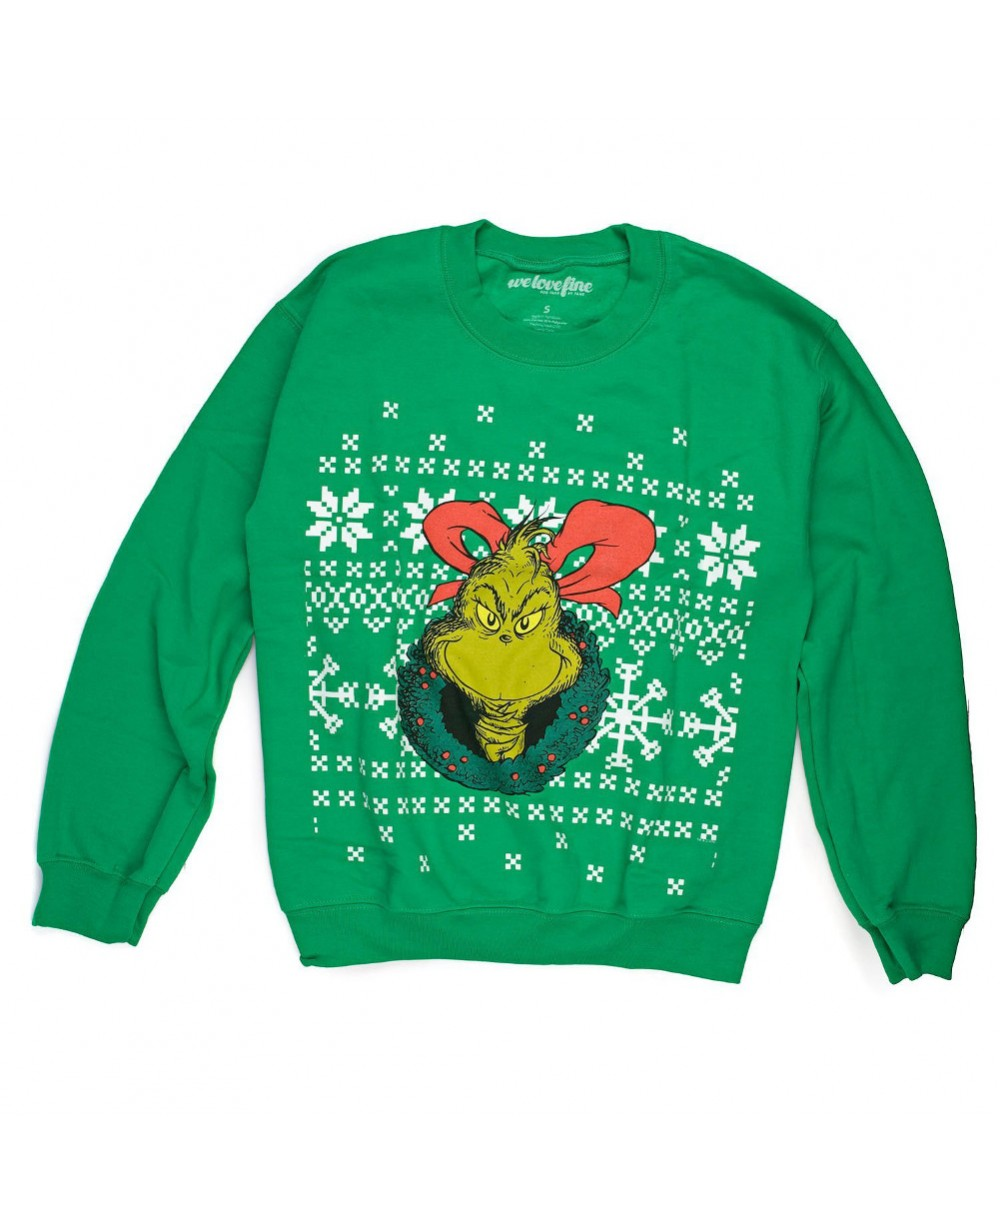 more views the grinch ugly christmas sweater